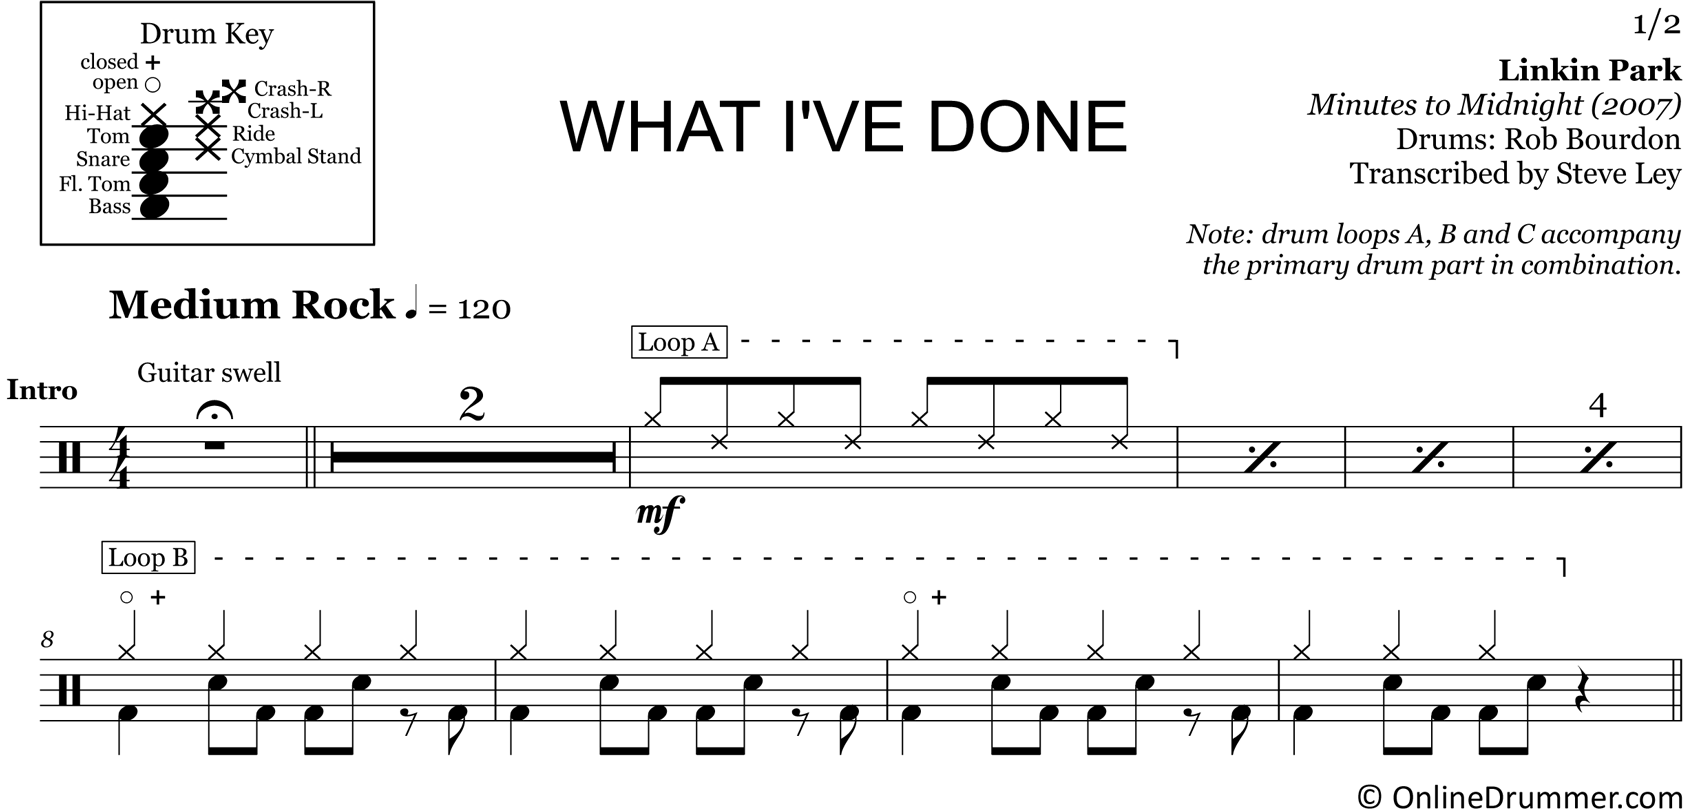 What I've Done - Linkin Park - Drum Sheet Music